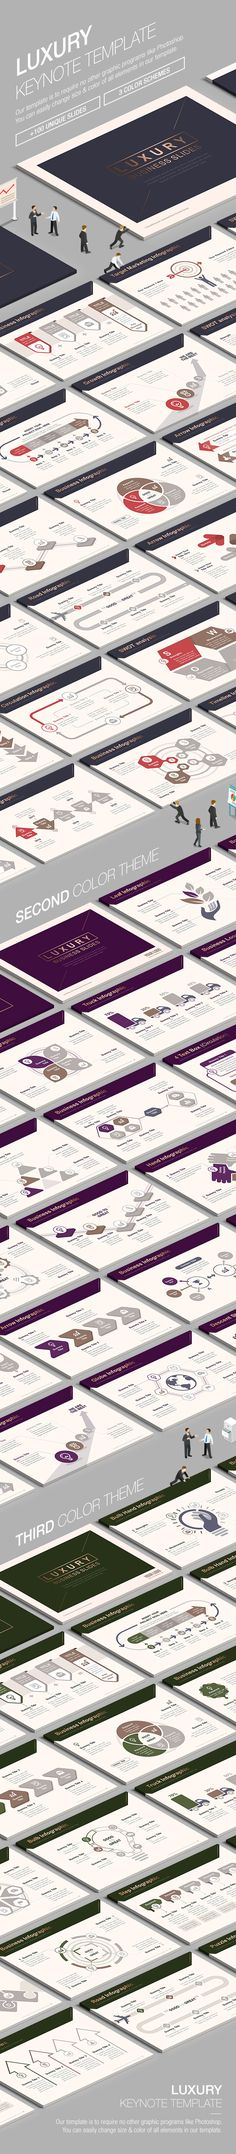 Business Keynote Template. Download here: https://graphicriver.net/item/business-keynote-template-002/17453414?ref=ksioks